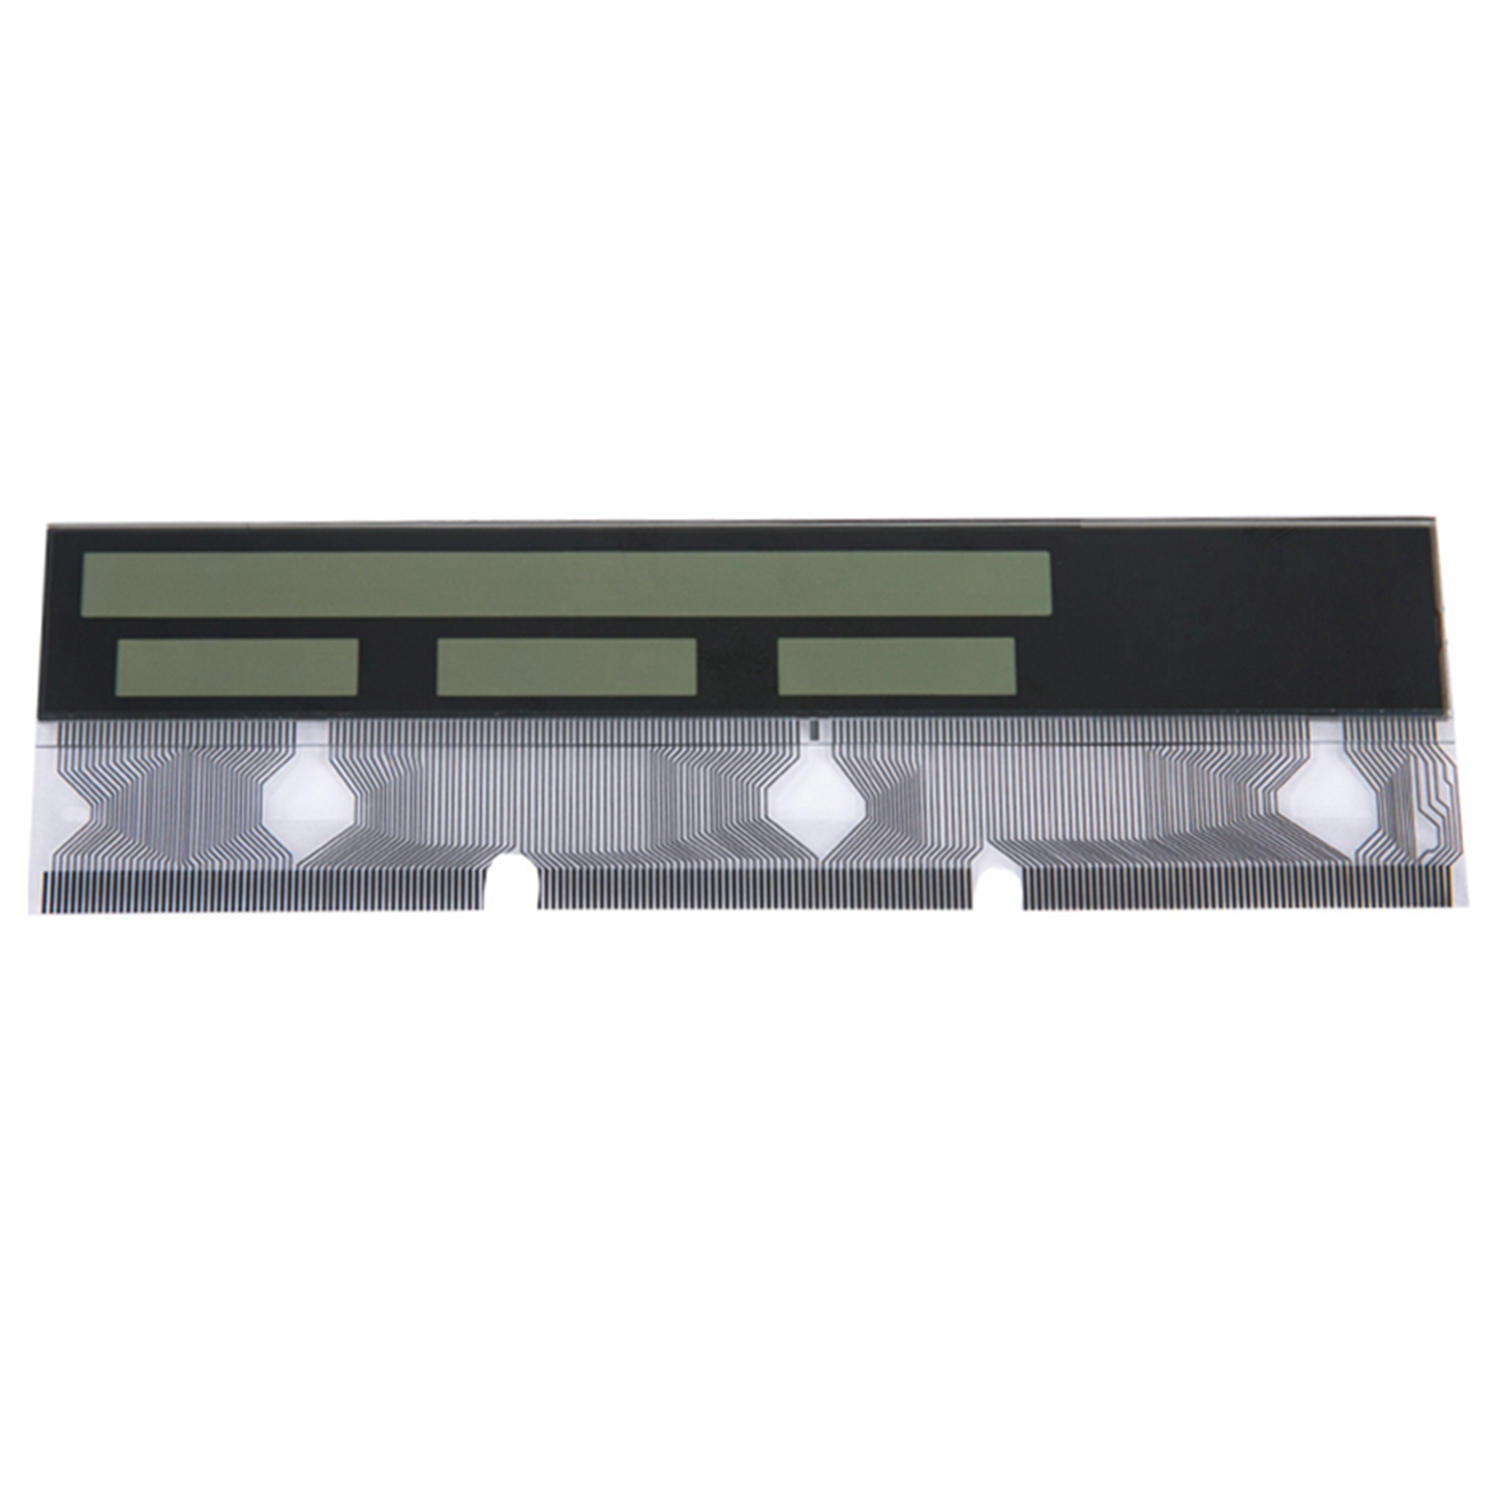 New RANGE ROVER INSTRUMENT CLUSTER LCD DISPLAY RIBBON CABLE for PIXEL REPAIR 2002 2003 2004 2005 2006